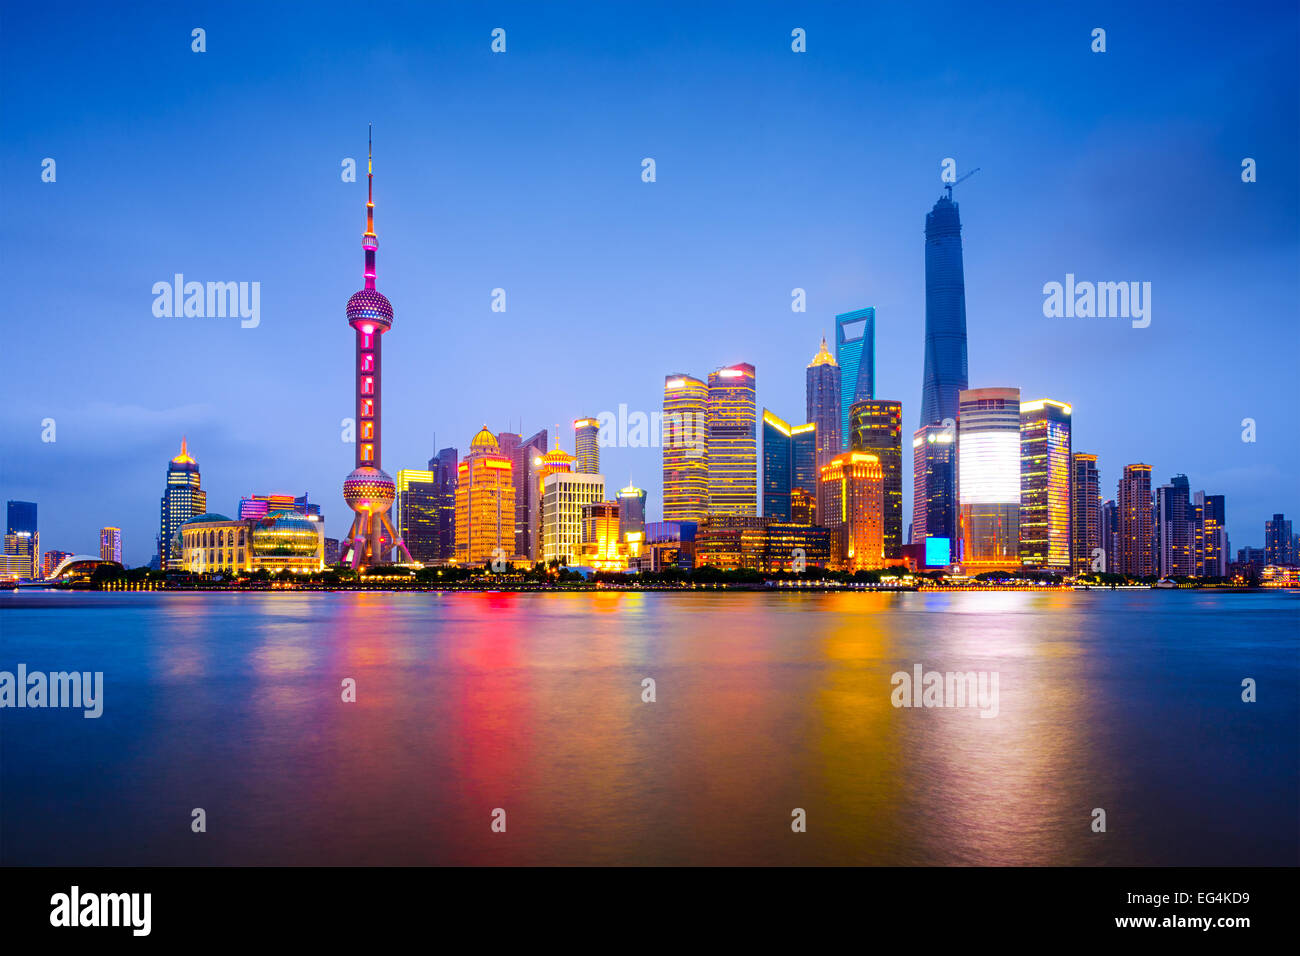 Shanghai, China city skyline on the Huangpu River. - Stock Image